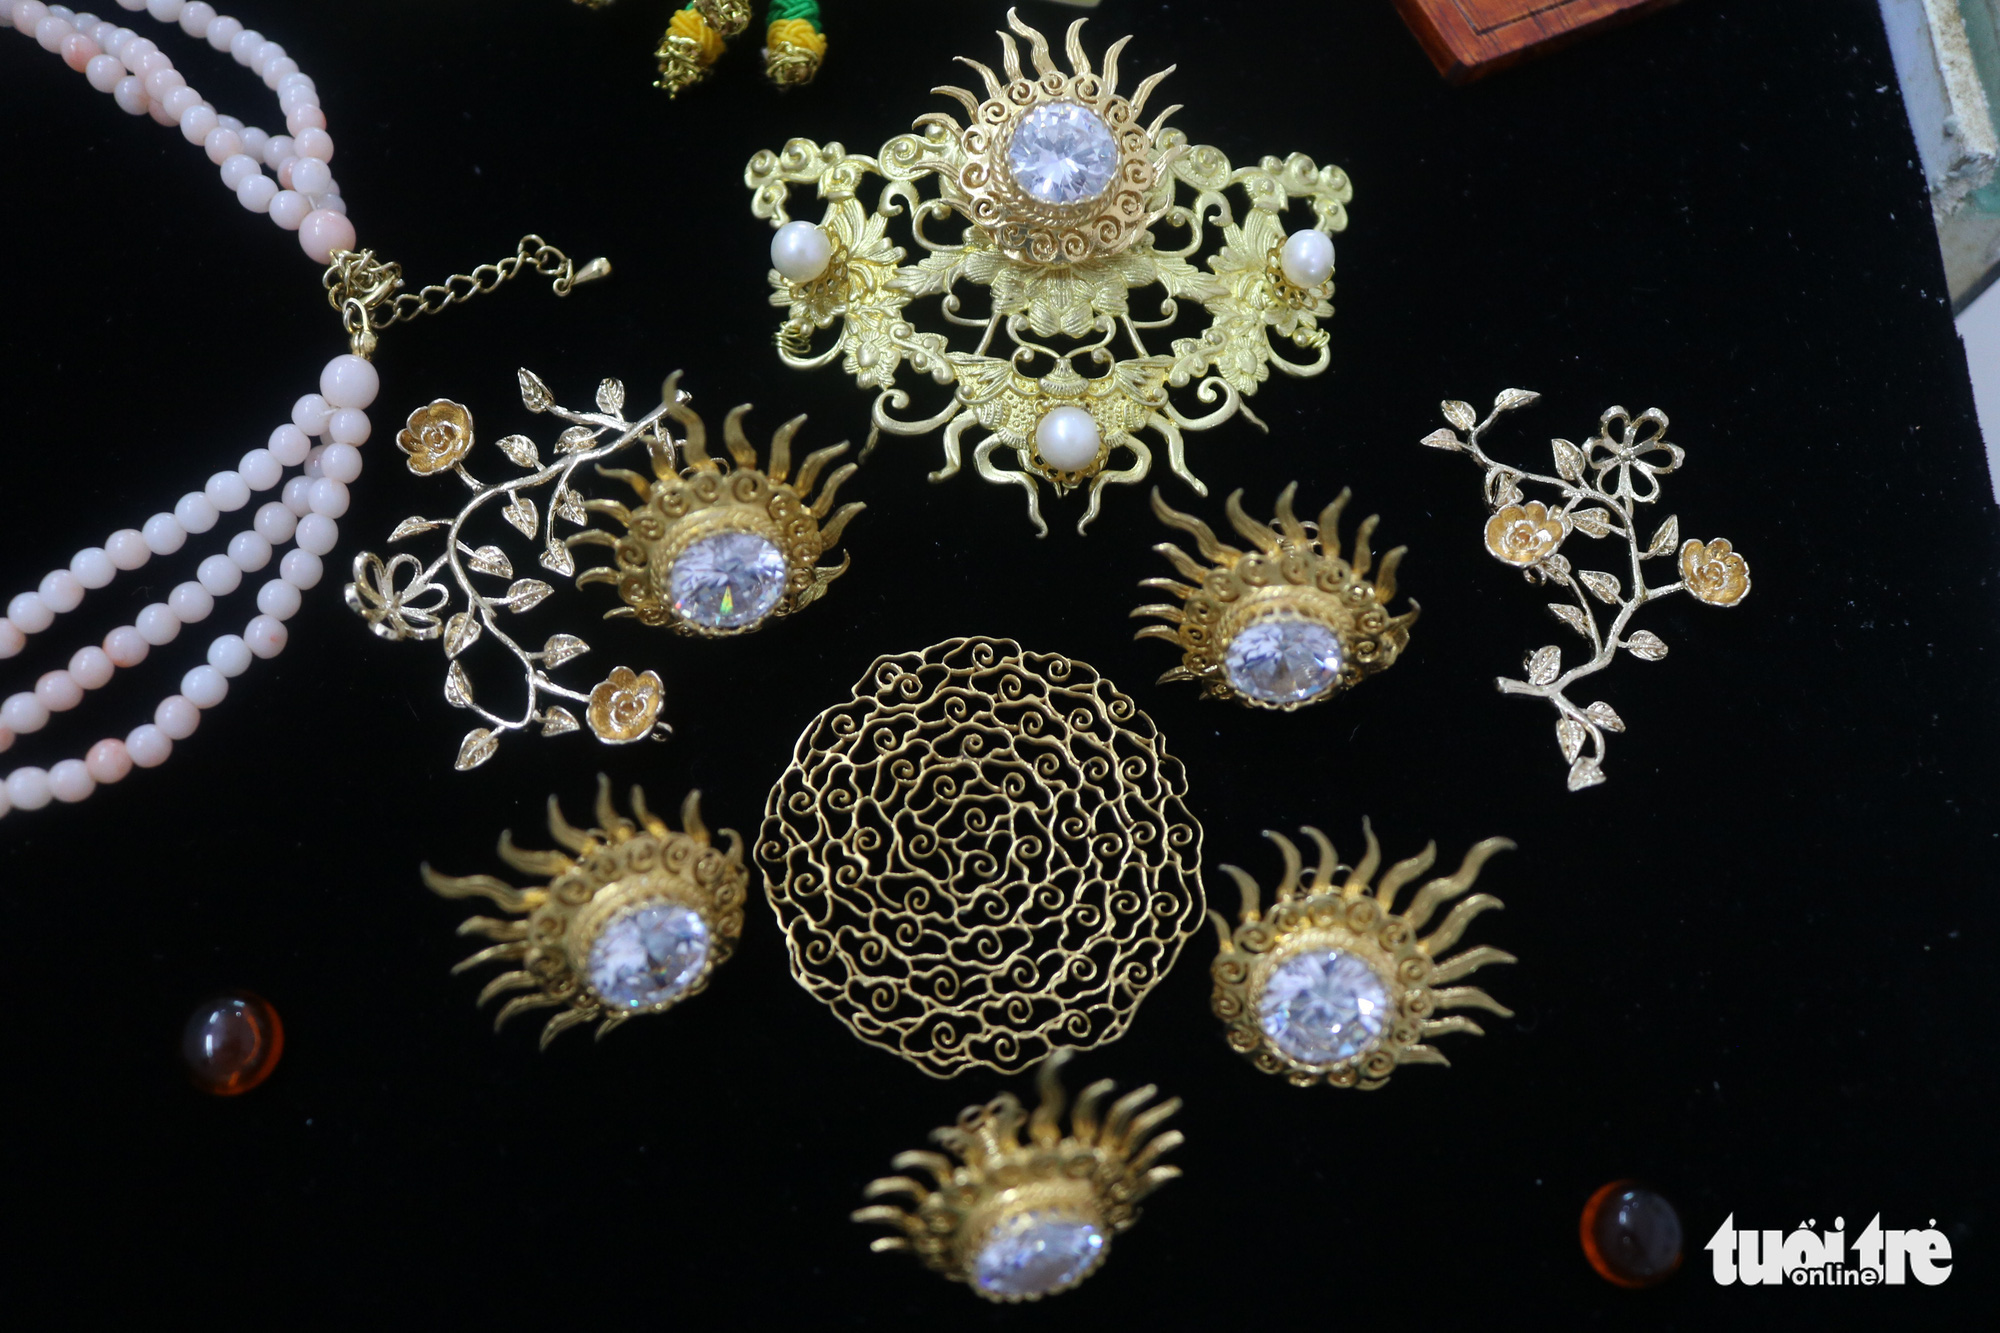 Accessories and jewelry under the Nguyen Dynasty made by Tran Quang Minh Tan